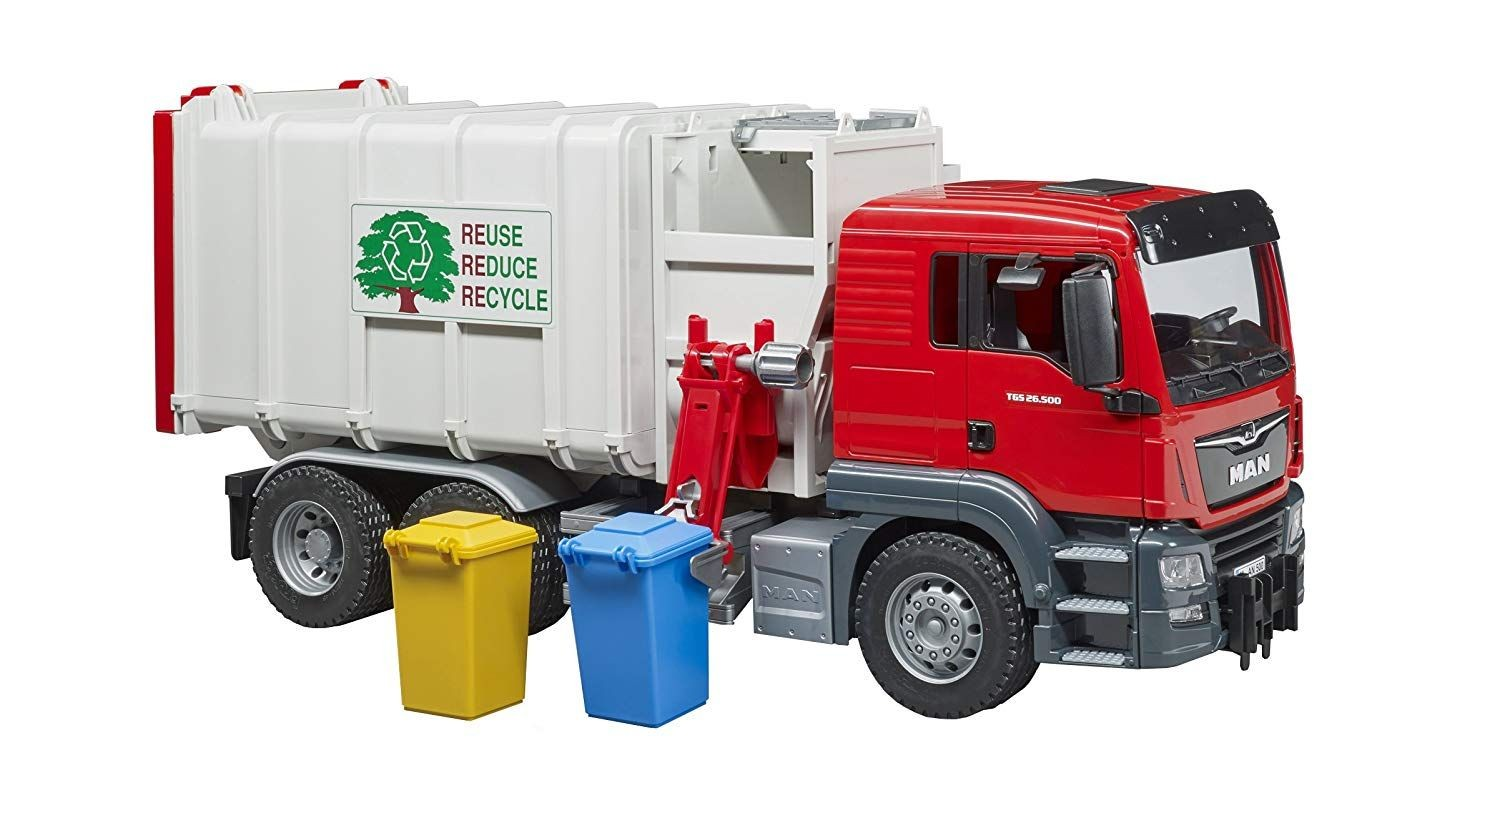 Man Tgs Side Loading Garbage Truck Vehicles Theisens Home Auto